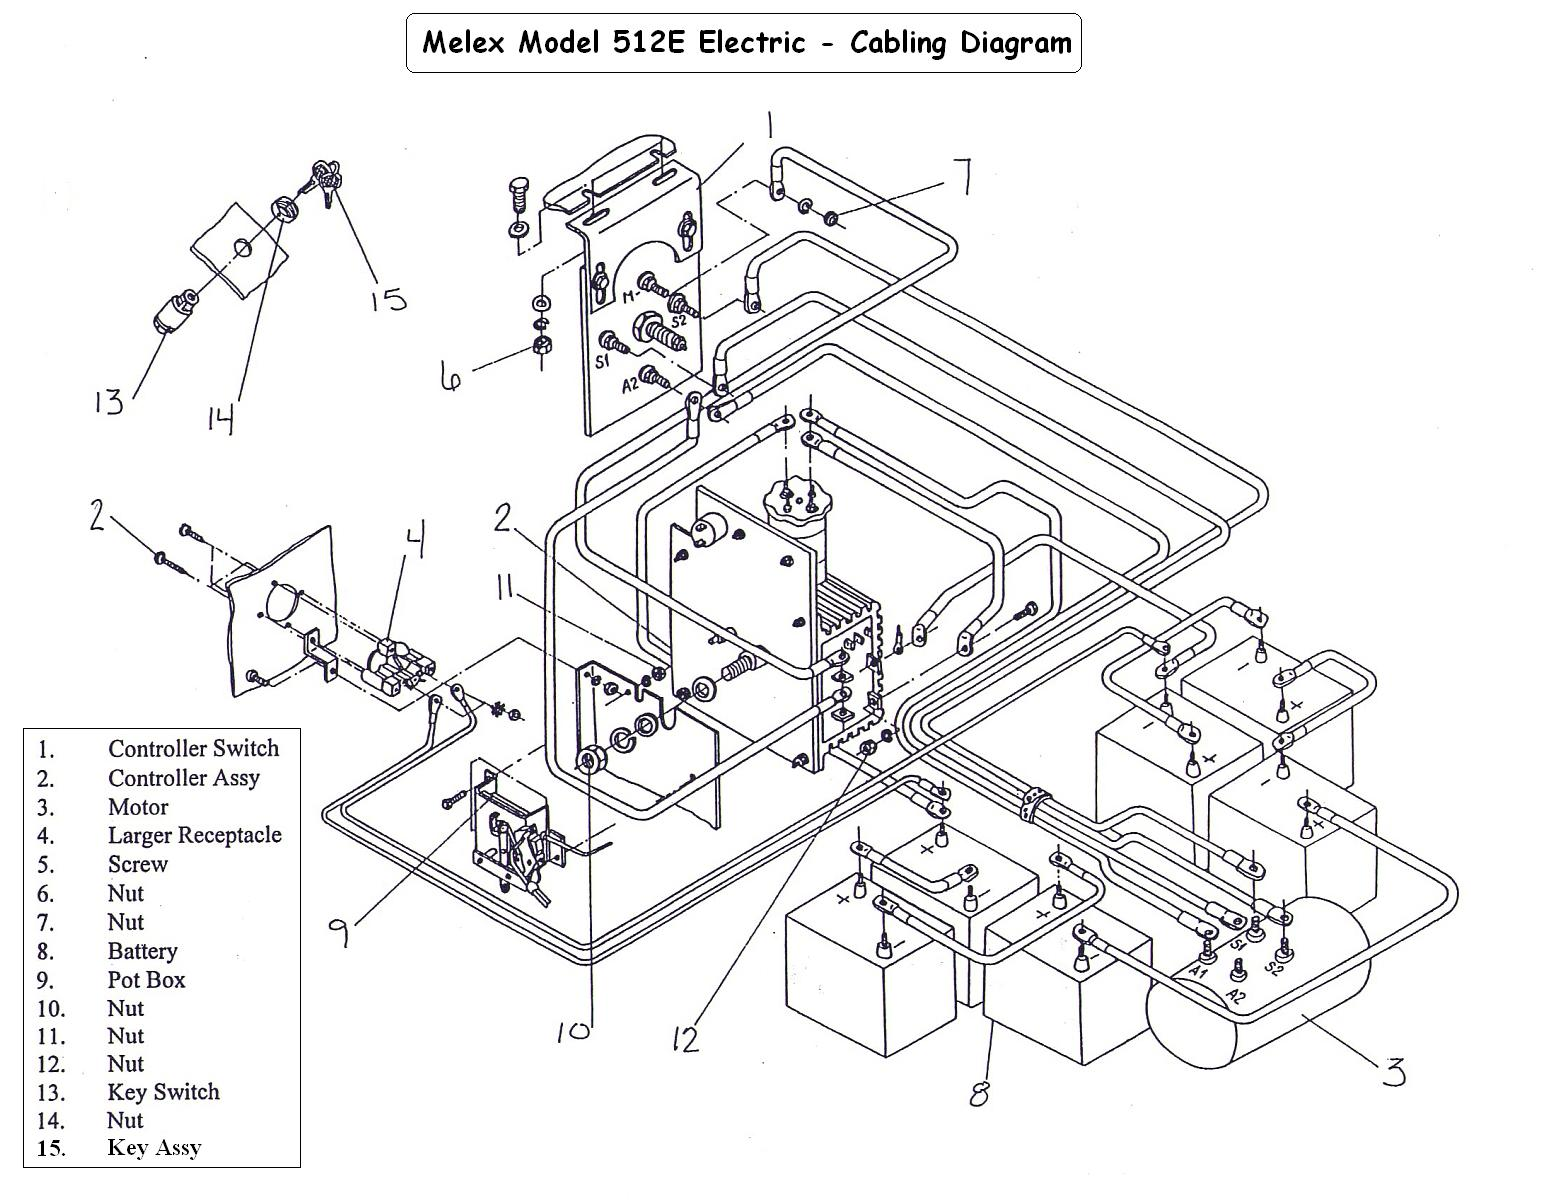 wiring diagram for 98 ezgo golf cart 36v with Vintagegolfcartparts   Gallery Categories Melex Melex Wiring Diagrams Media Melex512e Cabling Diagram on 1998 Club Car Gas Ezgo Wiring Diagram also 81 Ezgo Marathon Golf Cart Wiring Diagram also 48 Volt Ez Go Wiring Diagram as well 2003 Ezgo Wiring Diagram as well Vintagegolfcartparts   gallery categories Melex Melex Wiring Diagrams media Melex512E cabling diagram.